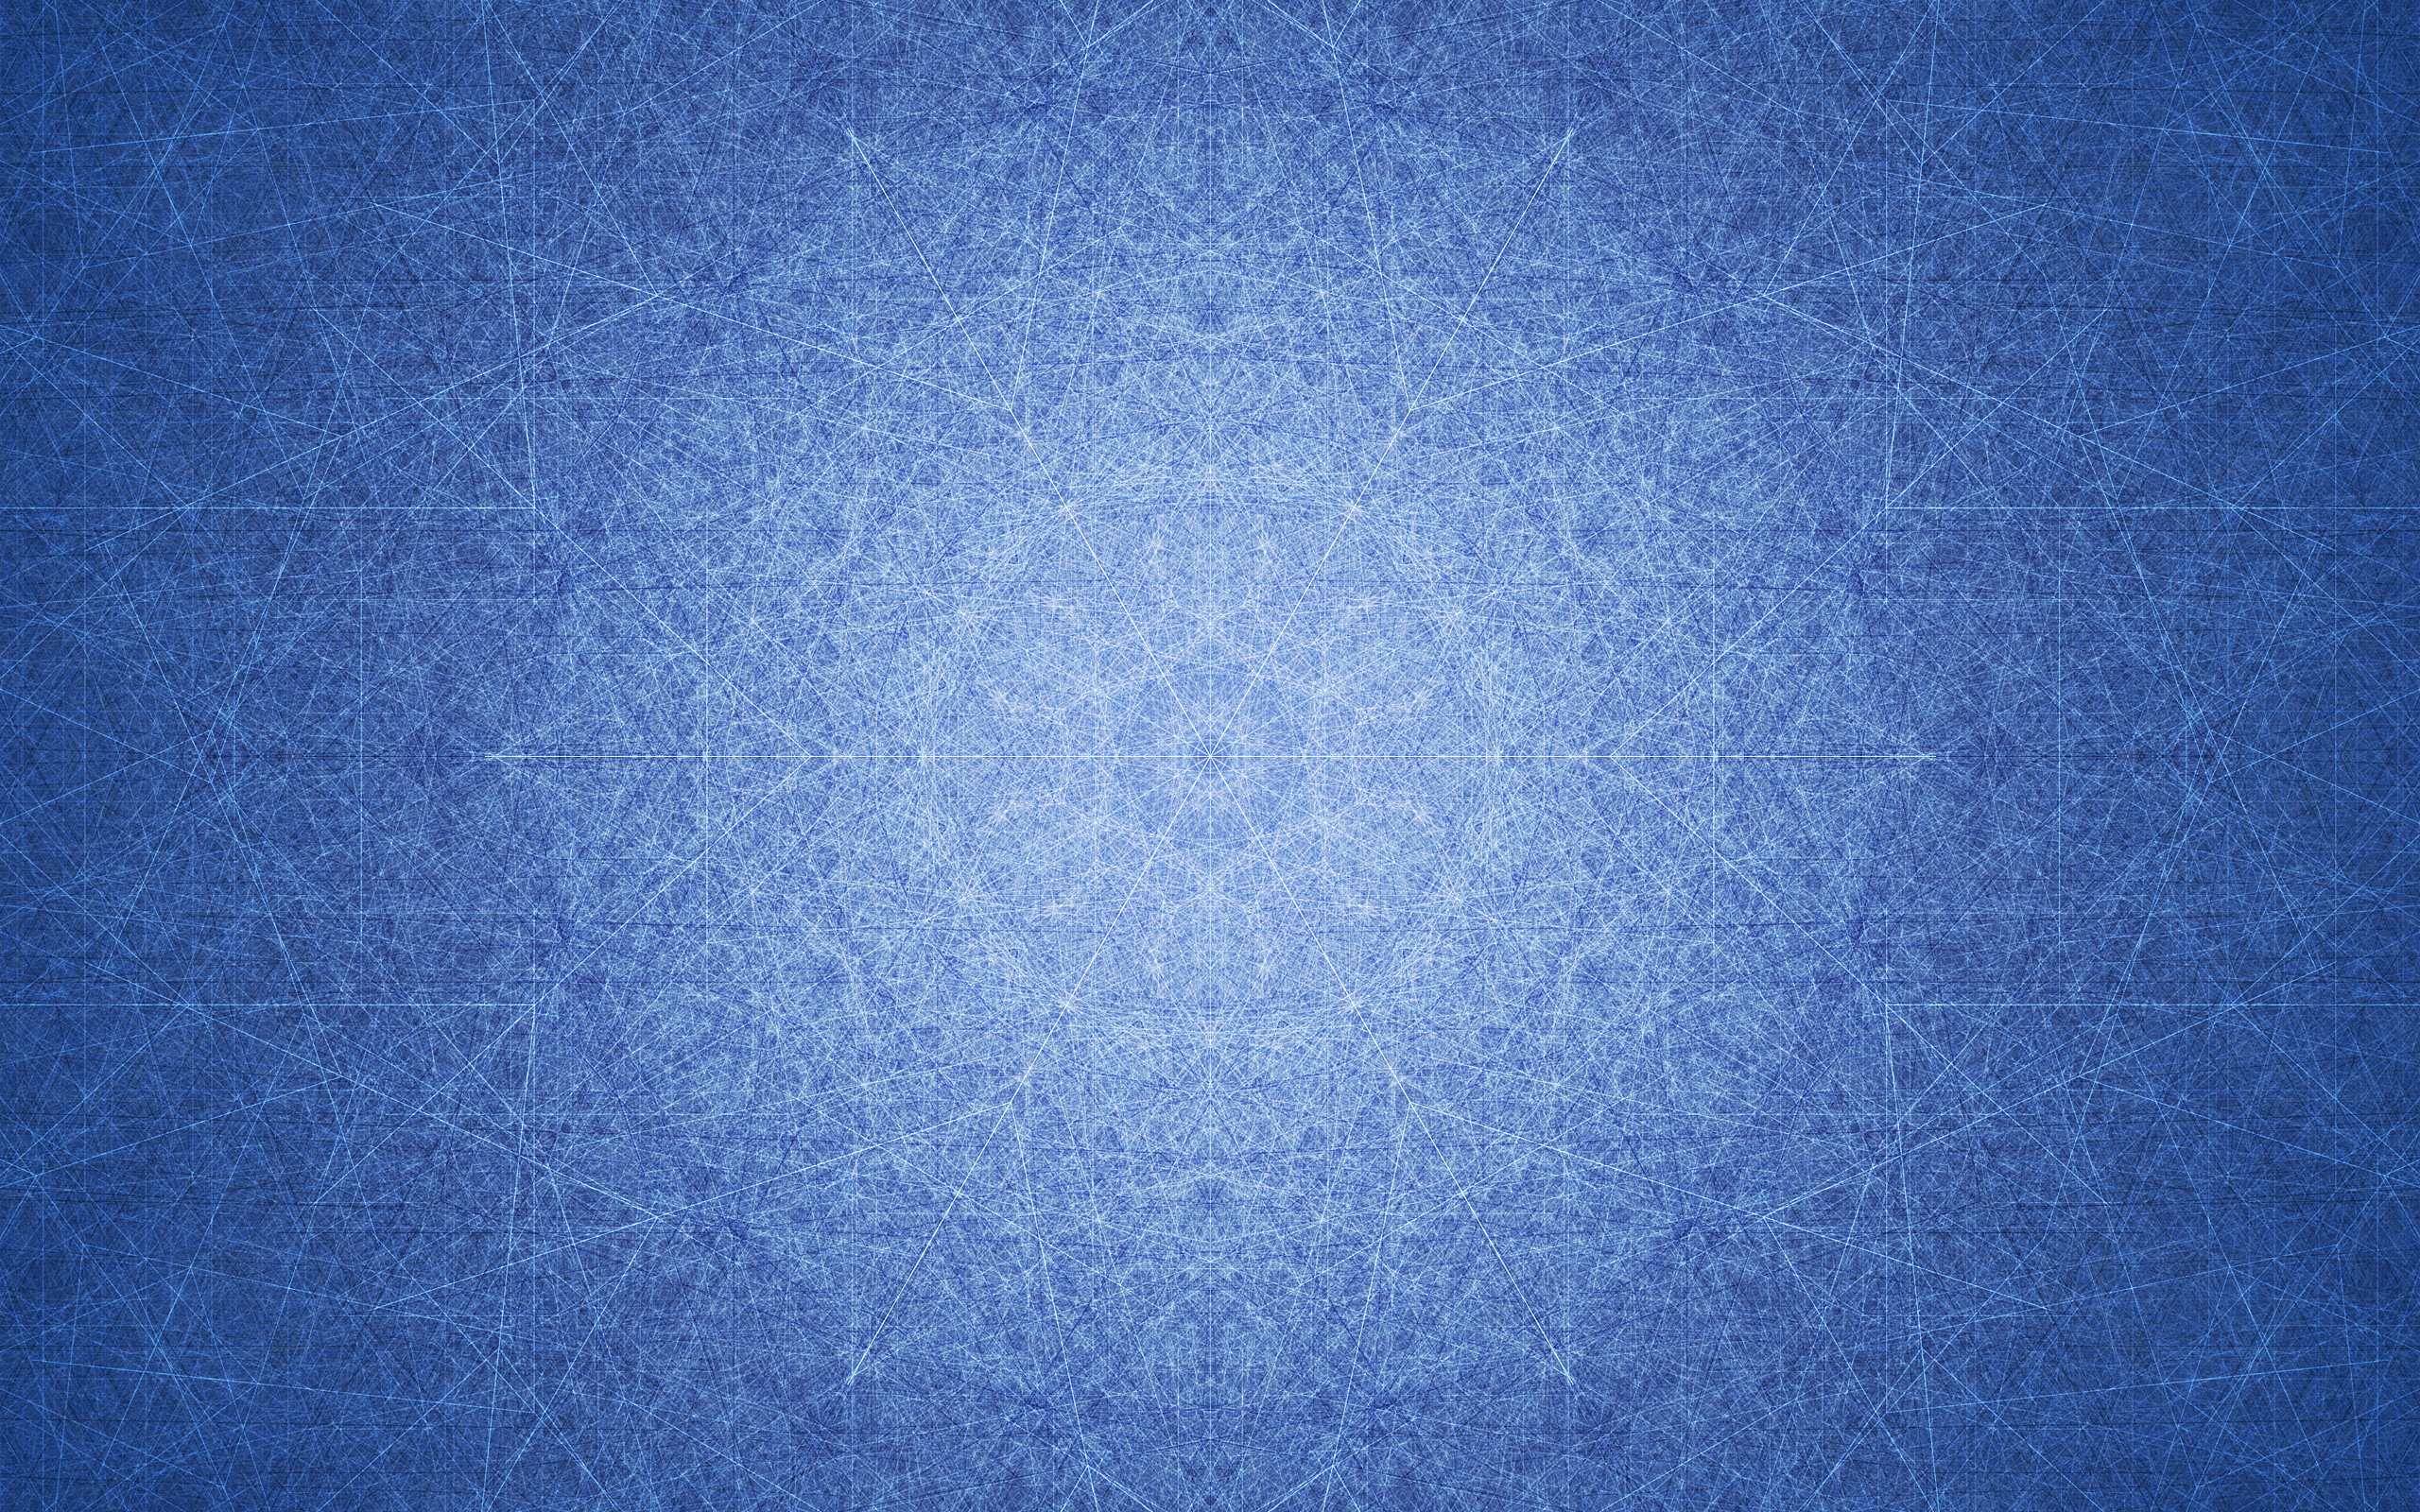 Abstract pattern blue texture wallpaper 2560x1600 for Blue patterned wallpaper bedroom